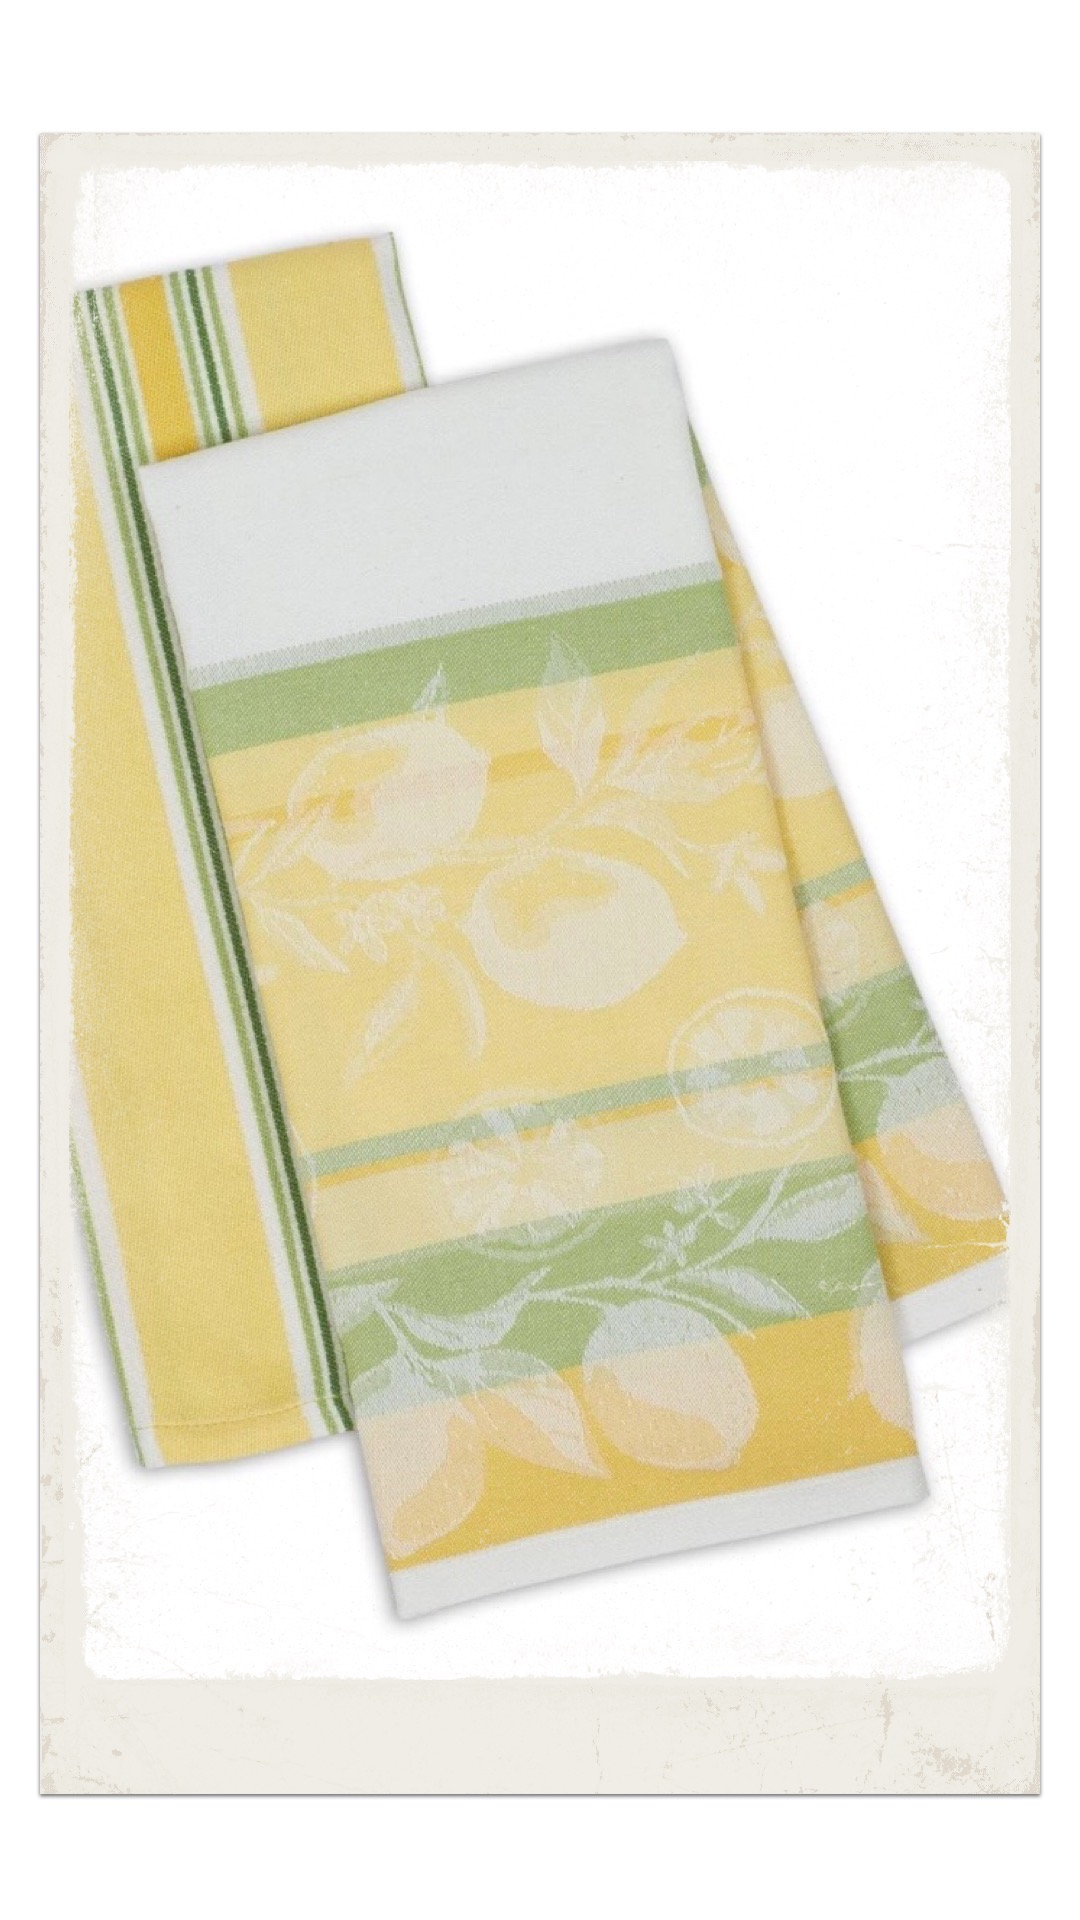 Lemon patterned tea towels for National Lemonade Day